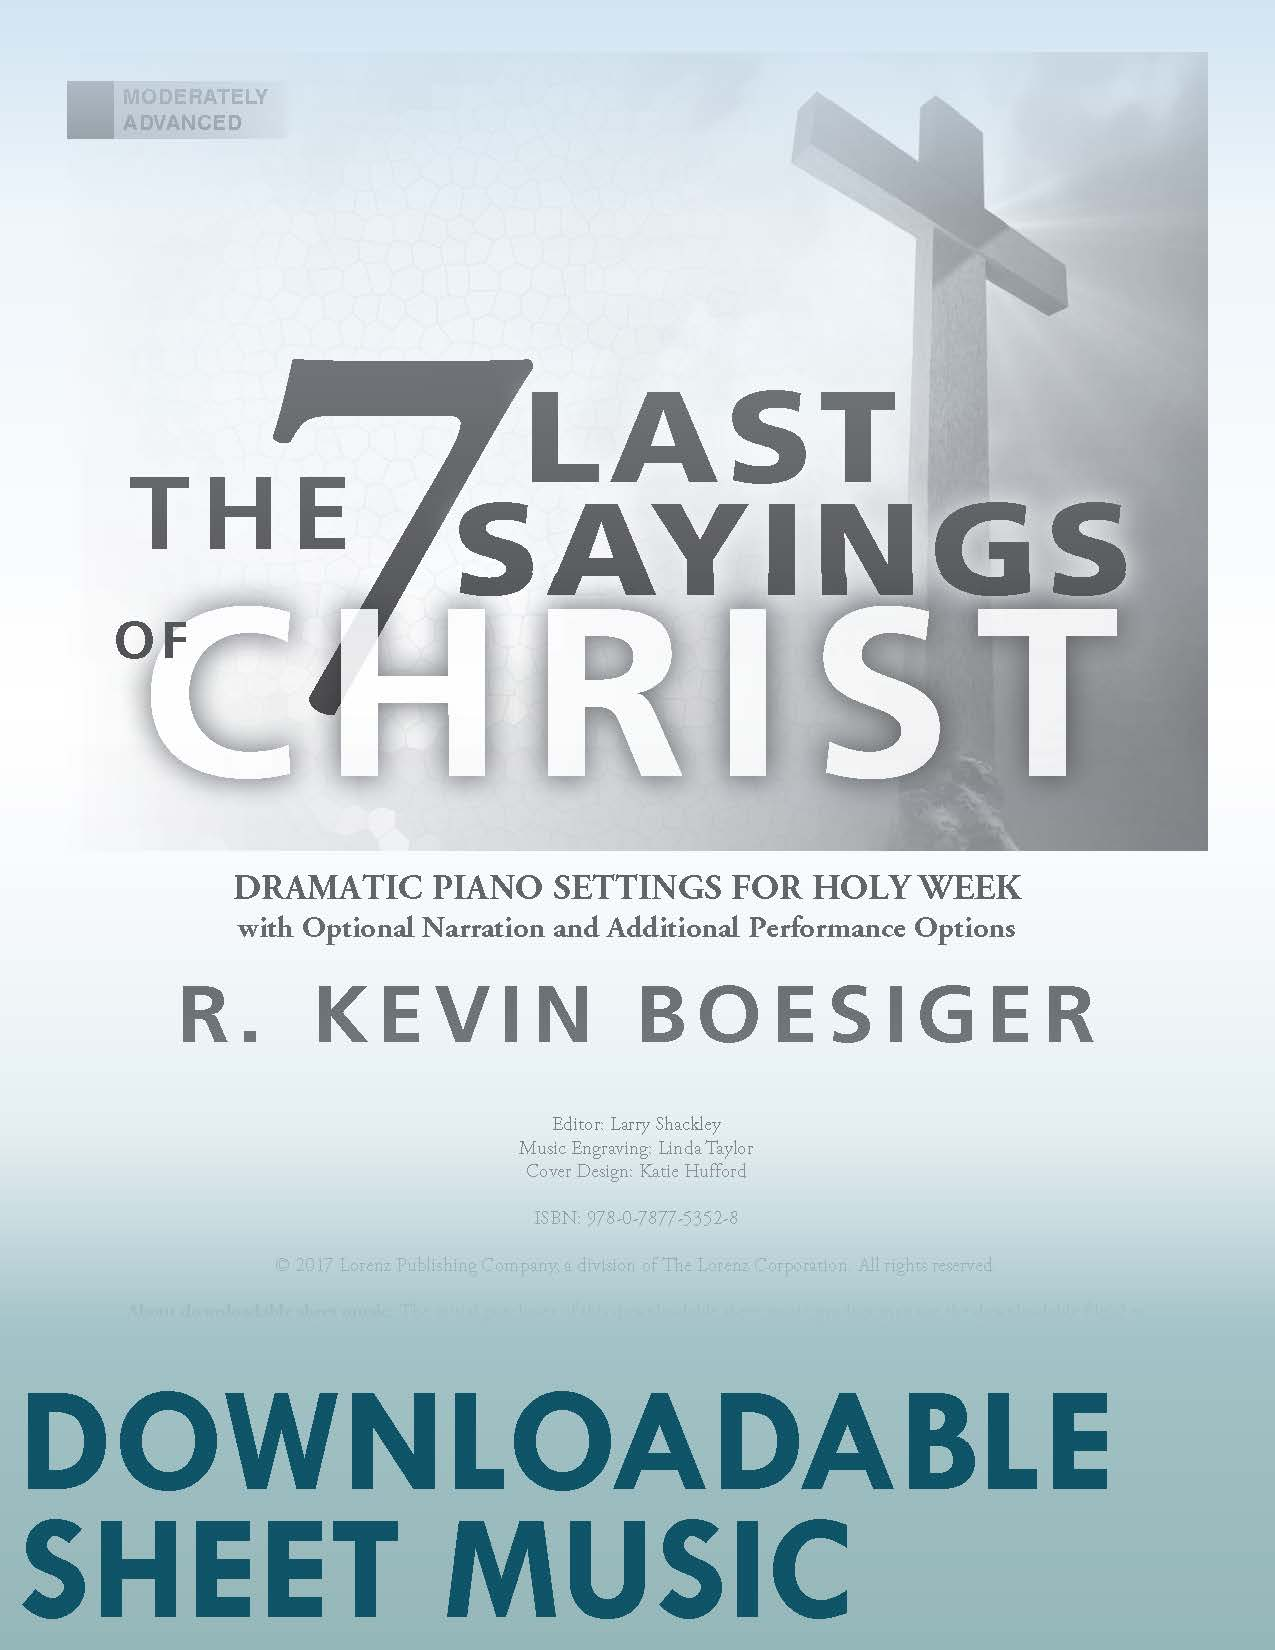 The Seven Last Sayings of Christ - Digital Download